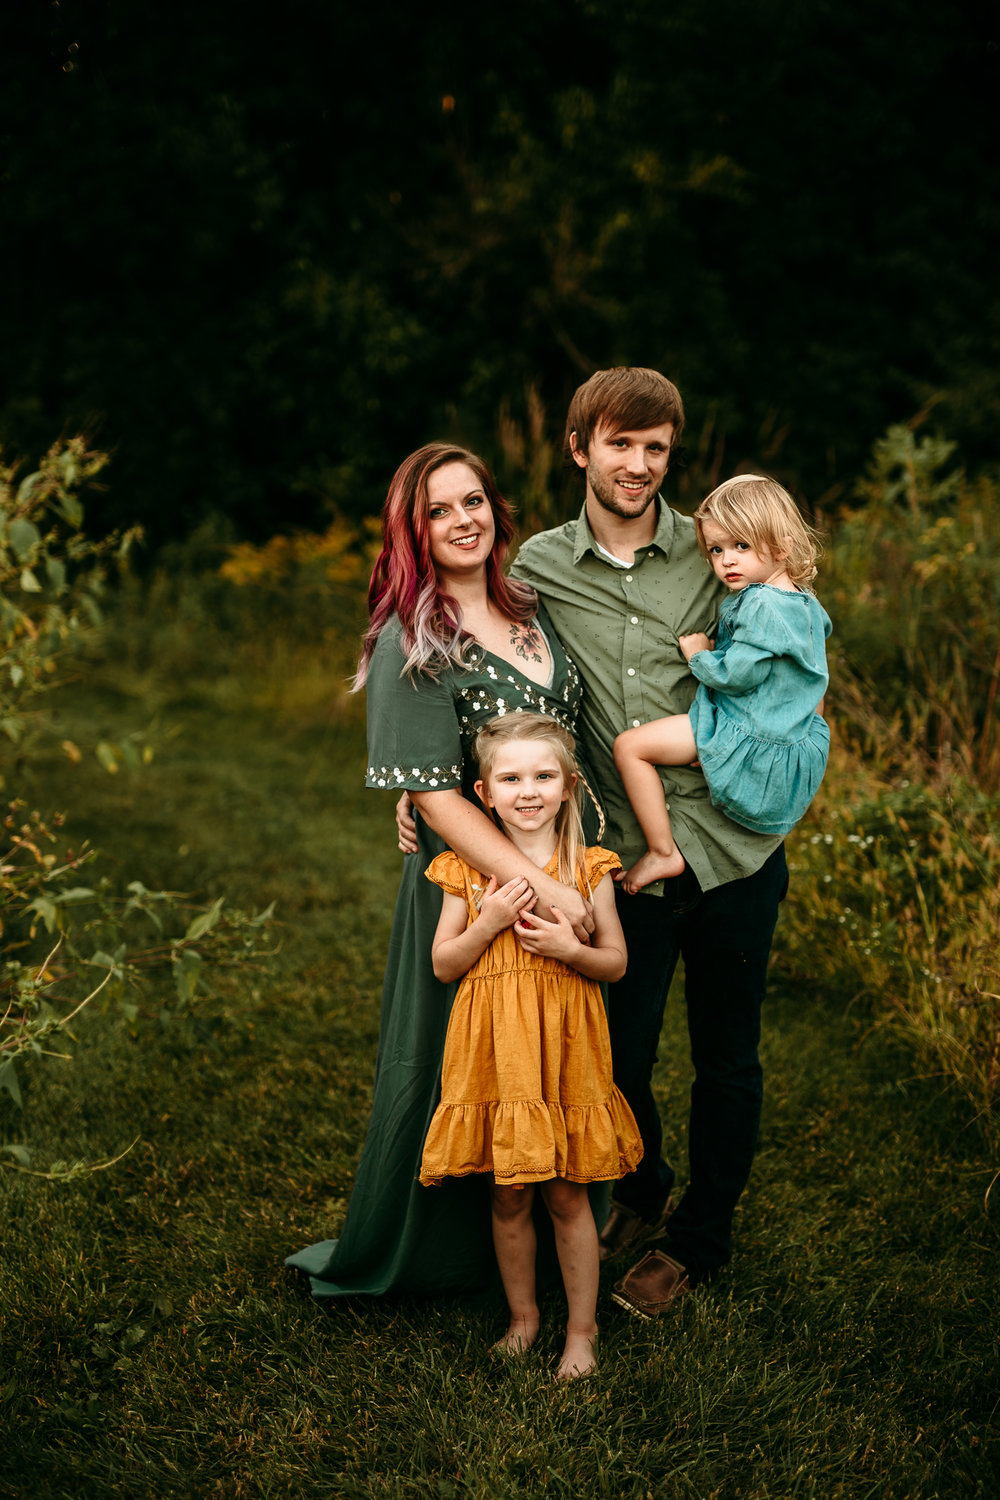 FREESE FAMILY MADE BELOVED PHOTOGRAPHY-14.jpg